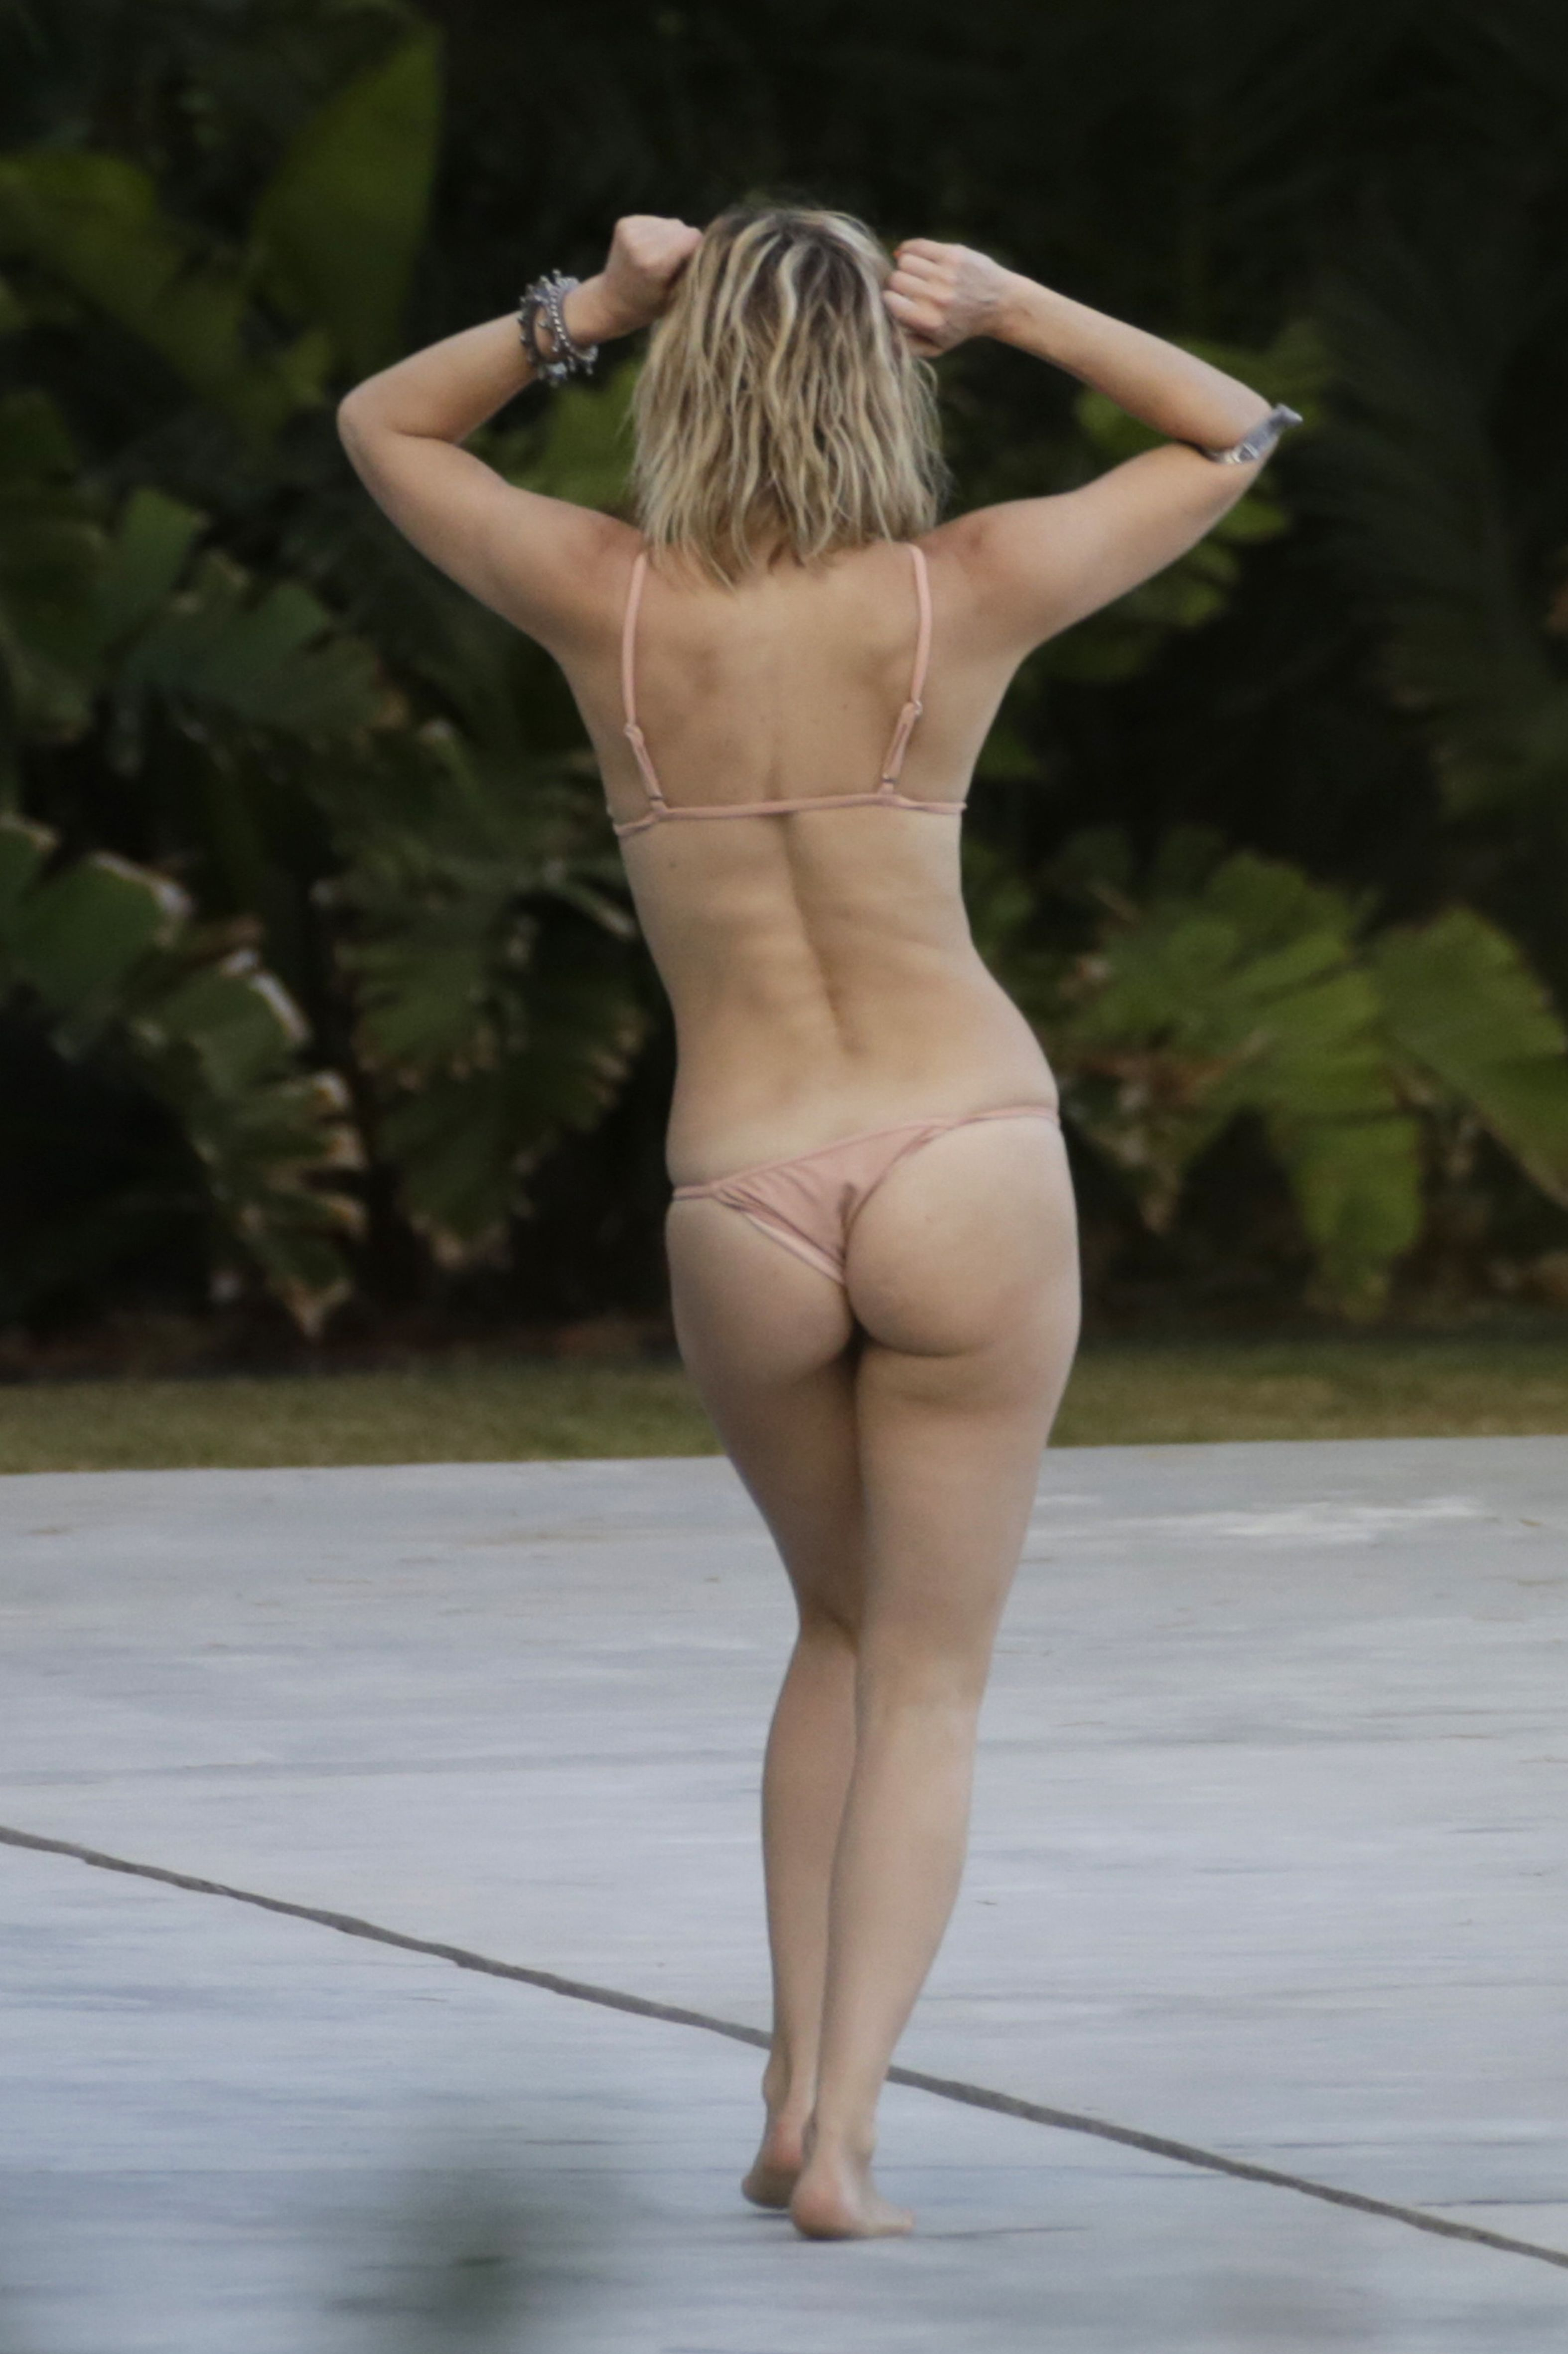 Kate Hudson – The Fappening Leaked Photos 2015-2020